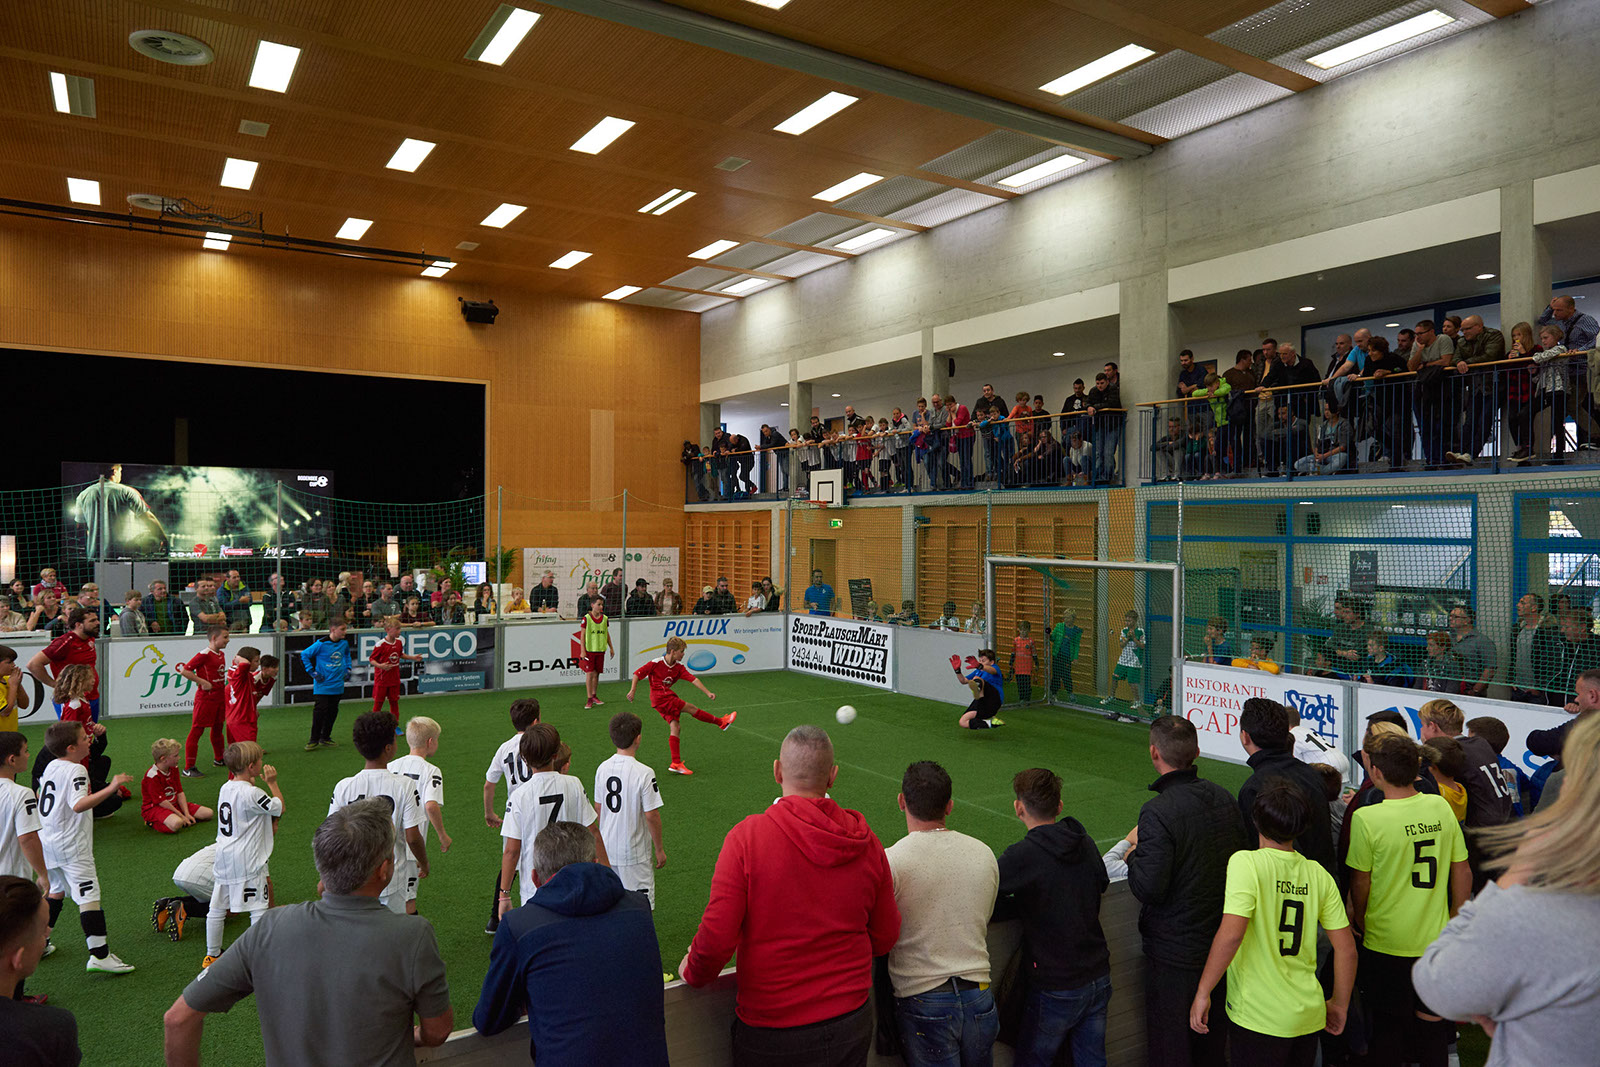 Bodensee-Cup_20171112_143114.jpg